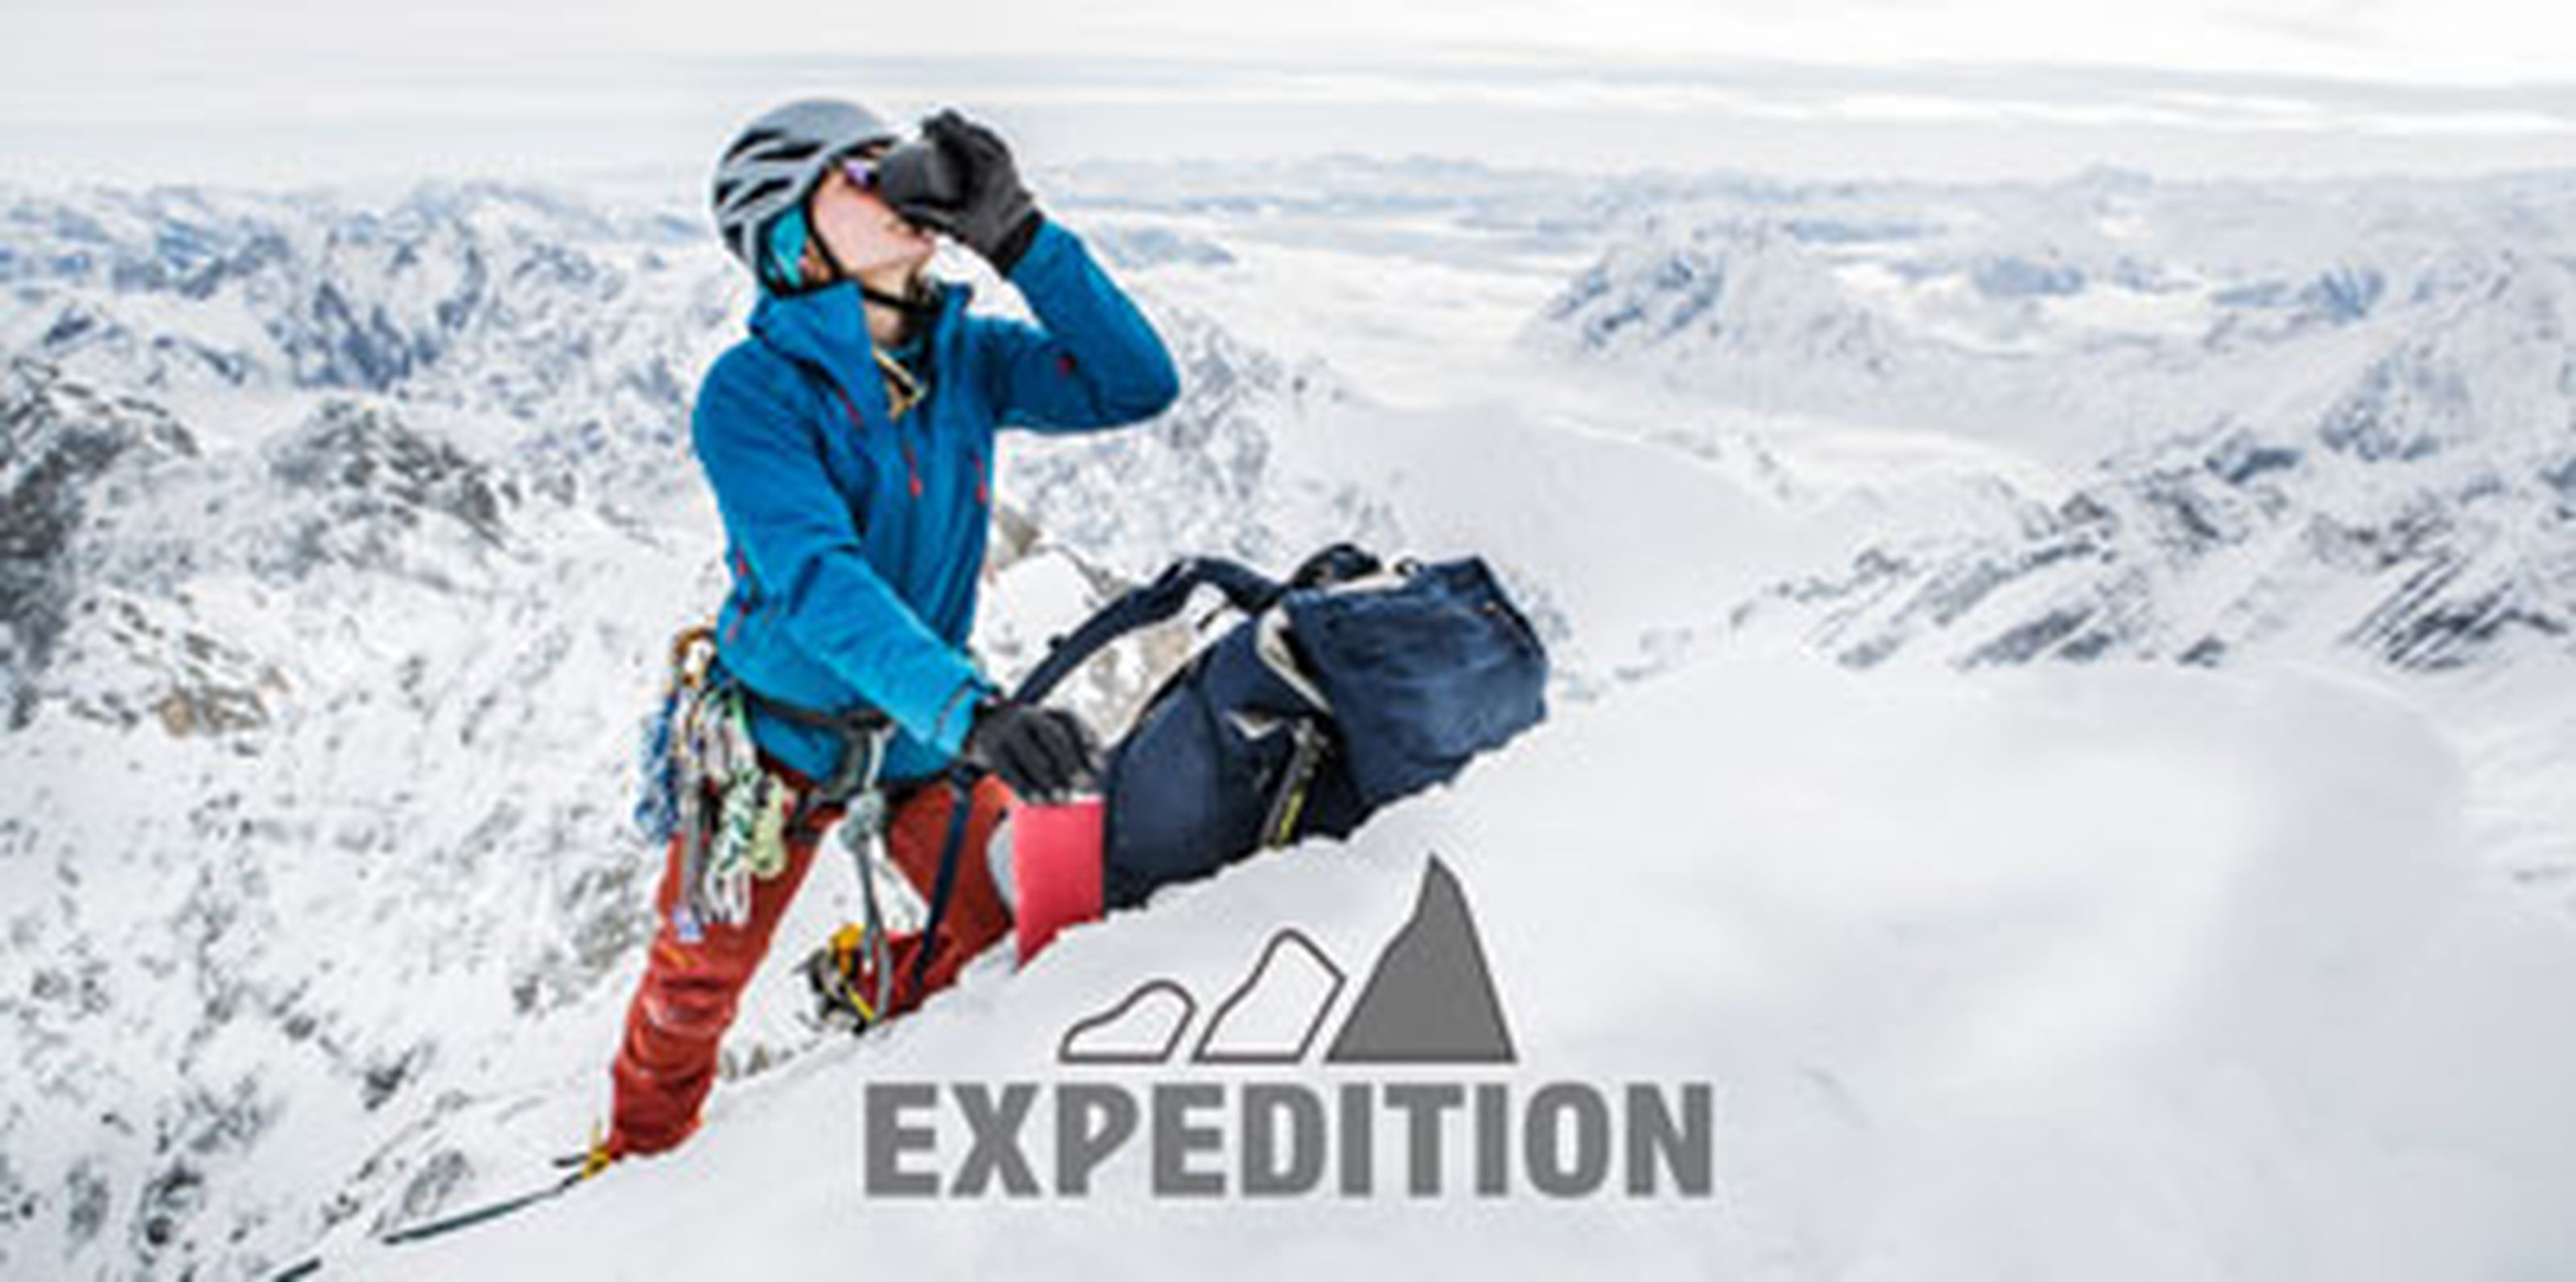 Expeditionskocher